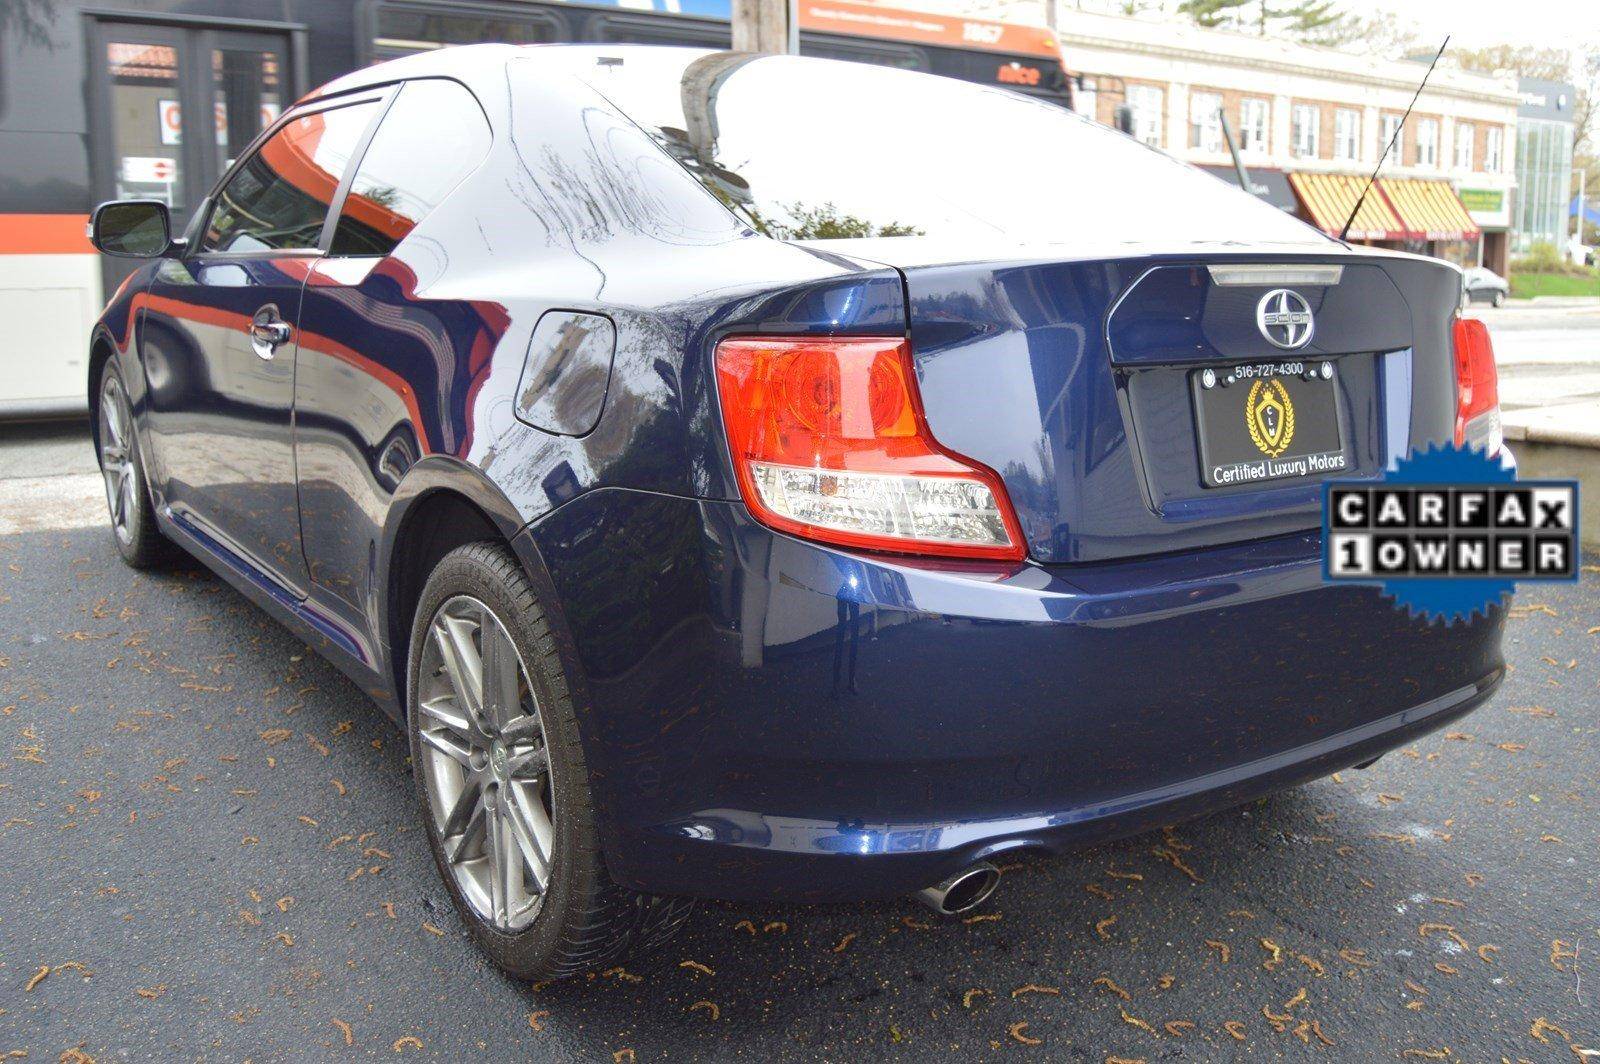 2013 scion tc stock 3427 for sale near great neck ny for Certified luxury motors great neck ny